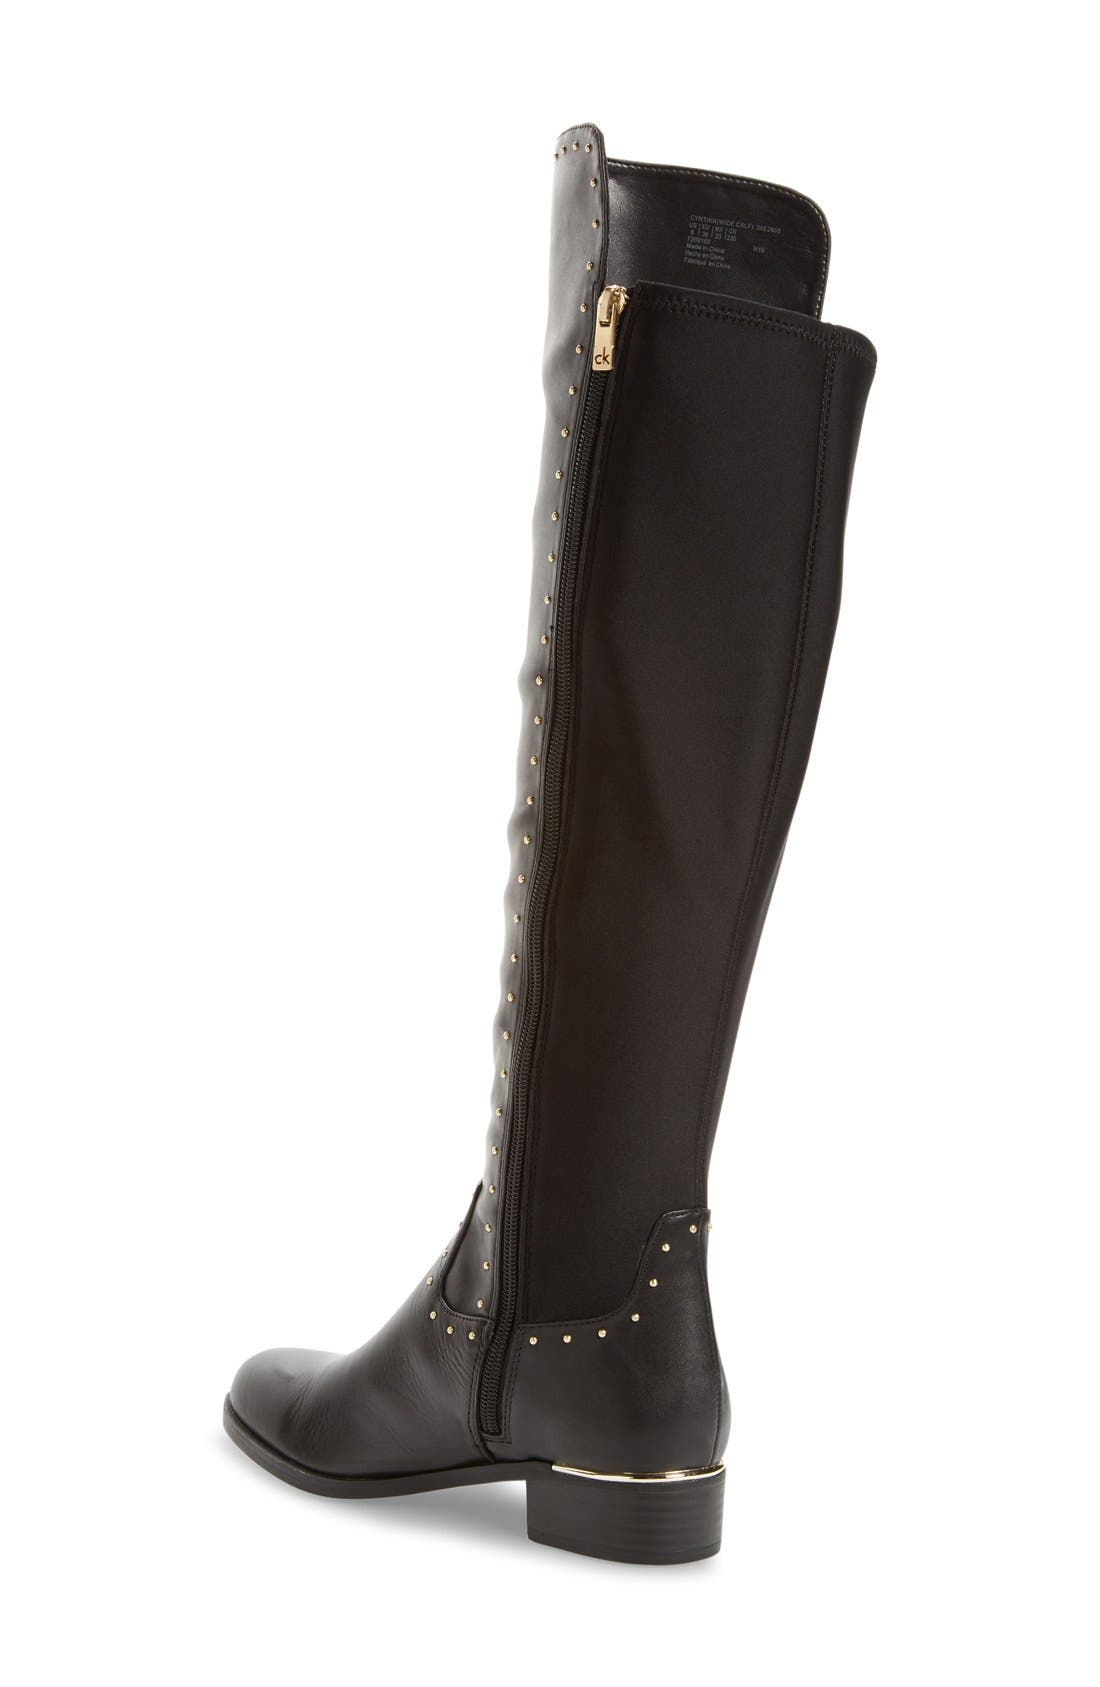 CALVIN KLEIN,                             Cynthia Studded Riding Boot,                             Alternate thumbnail 4, color,                             001